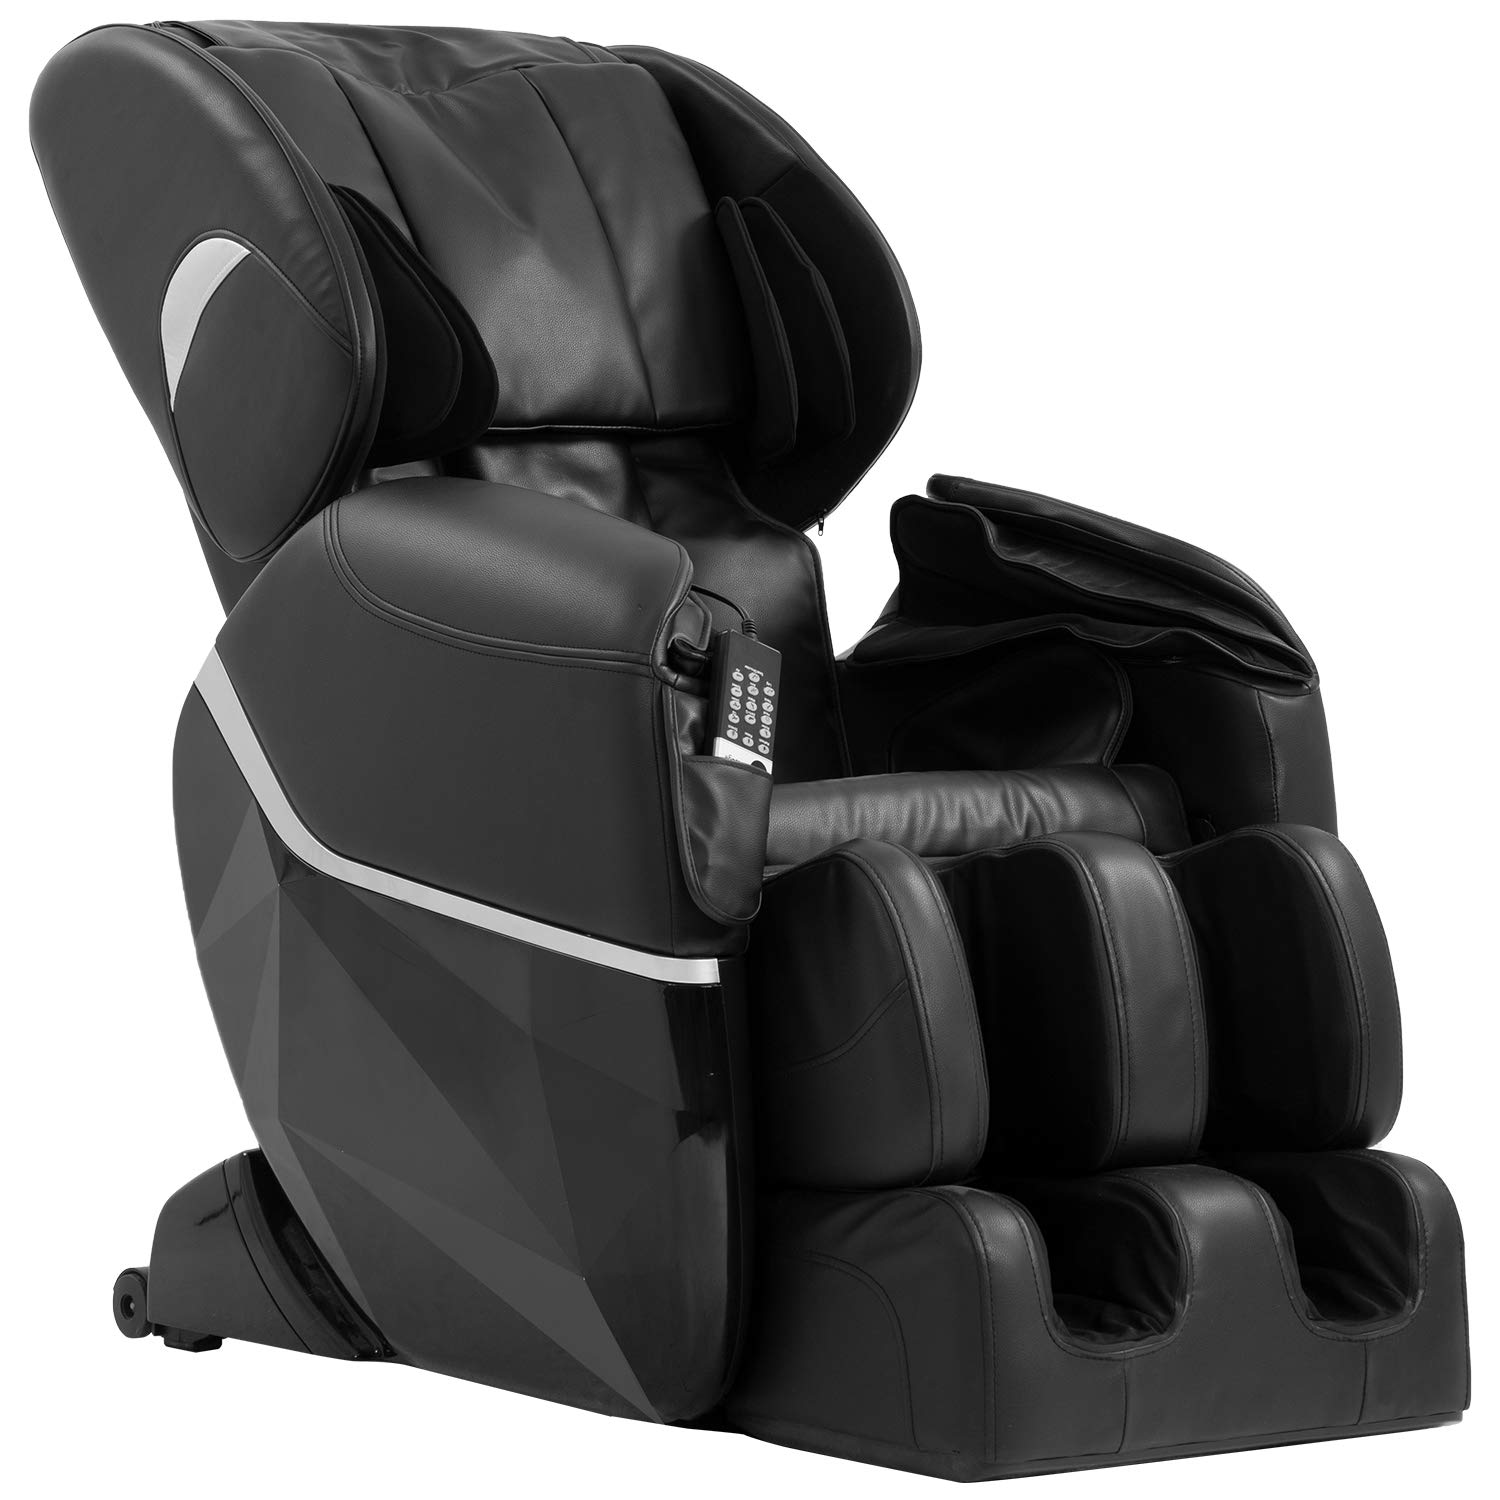 Pleasant Shiatsu Massage Chairs Full Body And Recliner Zero Gravity Massage Chair Electric Affordable With Armrest Linkage System Built In Heat Therapy Foot Lamtechconsult Wood Chair Design Ideas Lamtechconsultcom